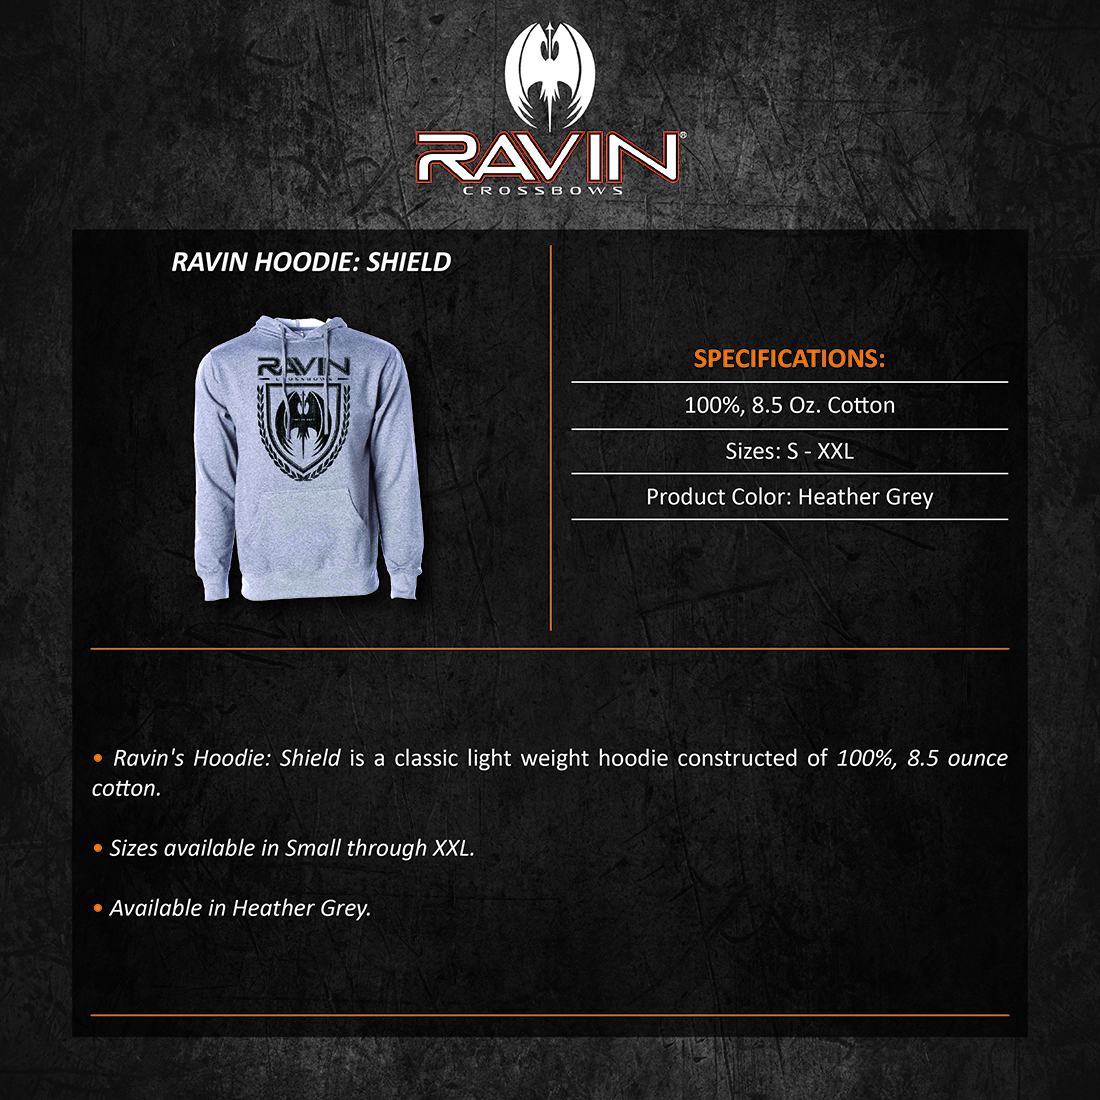 Ravin_Hoodie_Shield_Product_Description